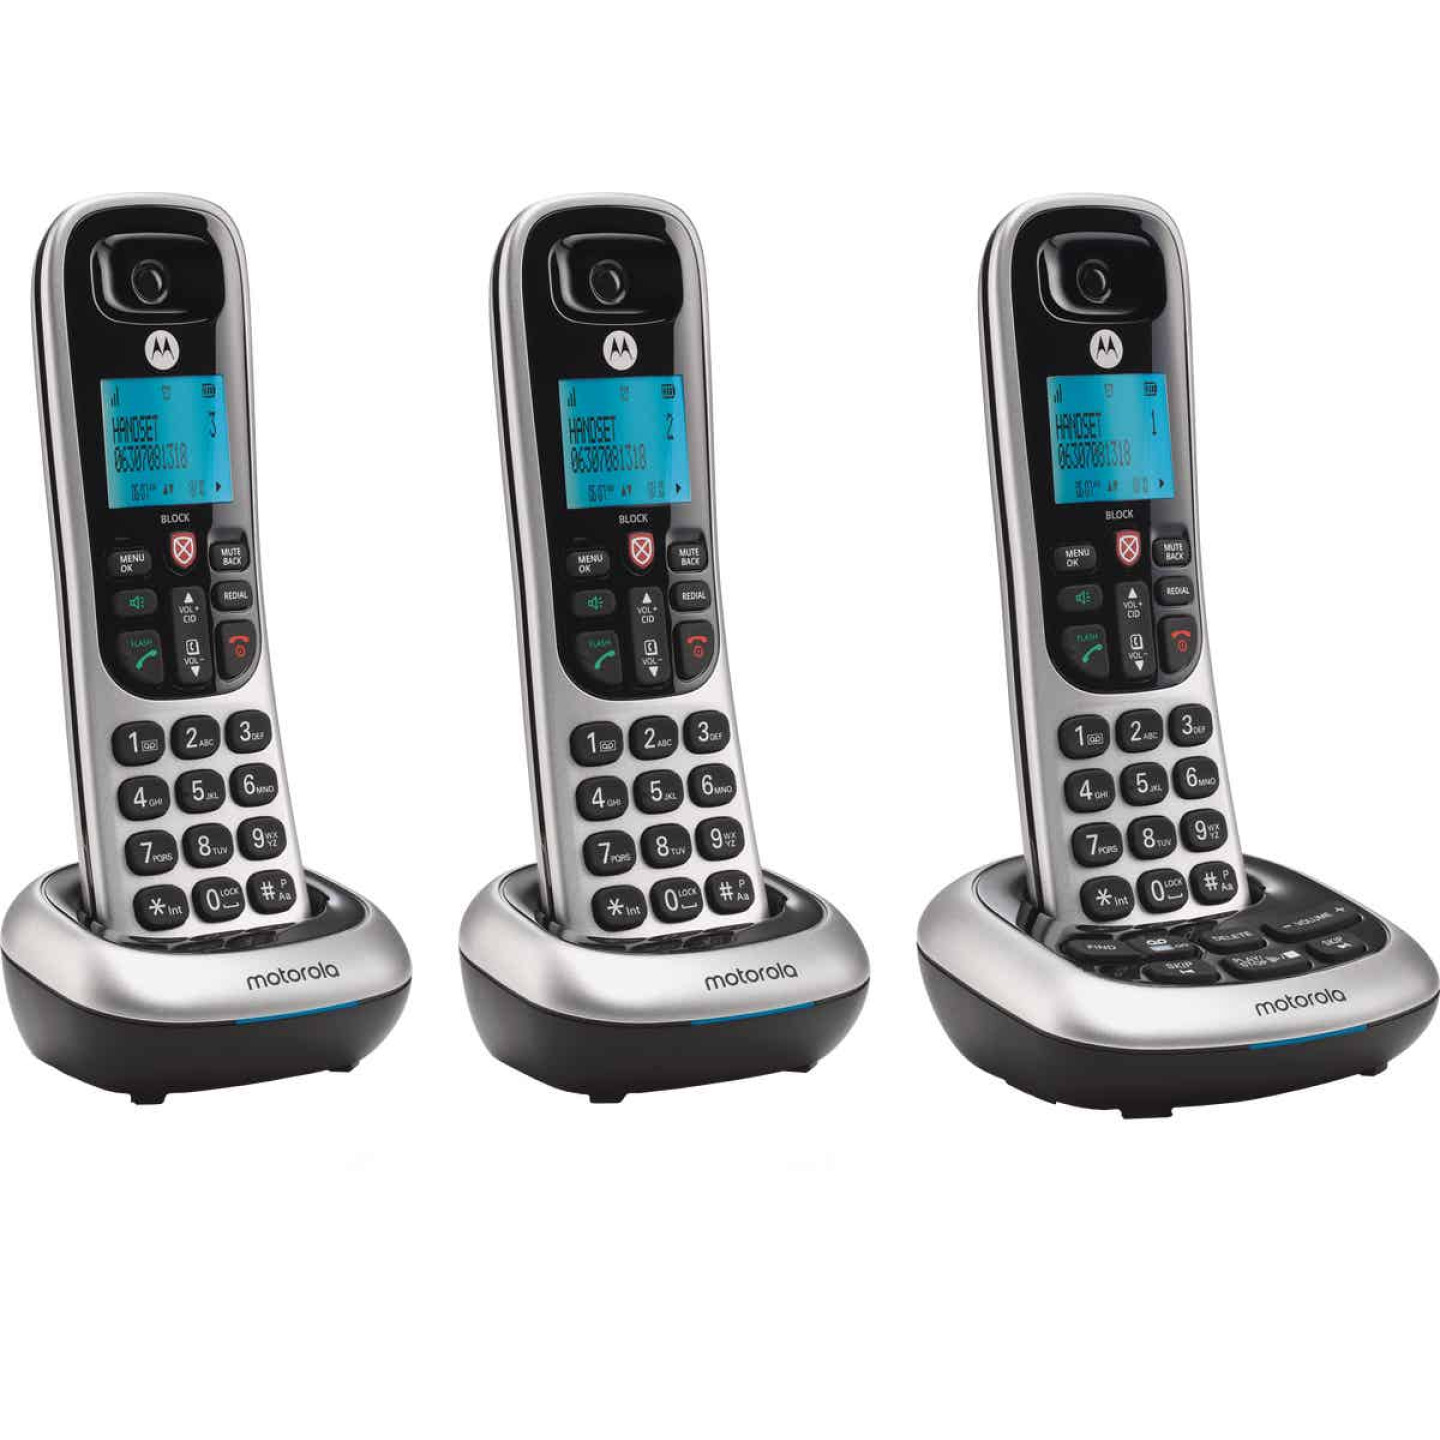 Motorola 1-Line 3-Handset Silver Cordless Phone with Answering System Image 1